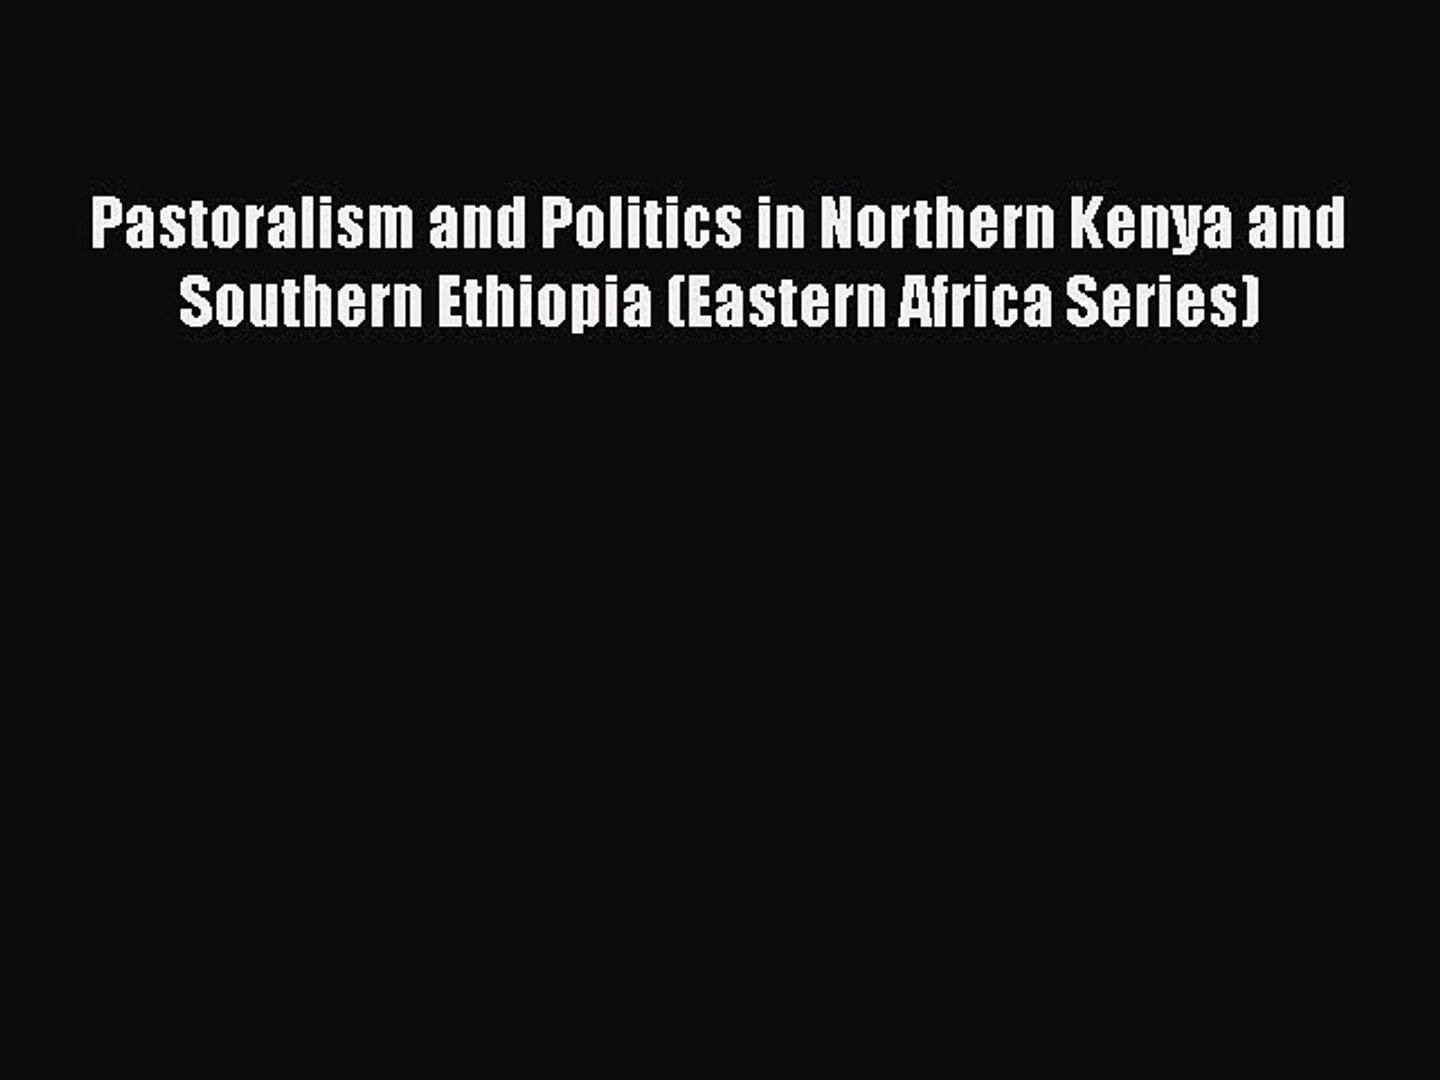 [PDF] Pastoralism and Politics in Northern Kenya and Southern Ethiopia (Eastern Africa Series)